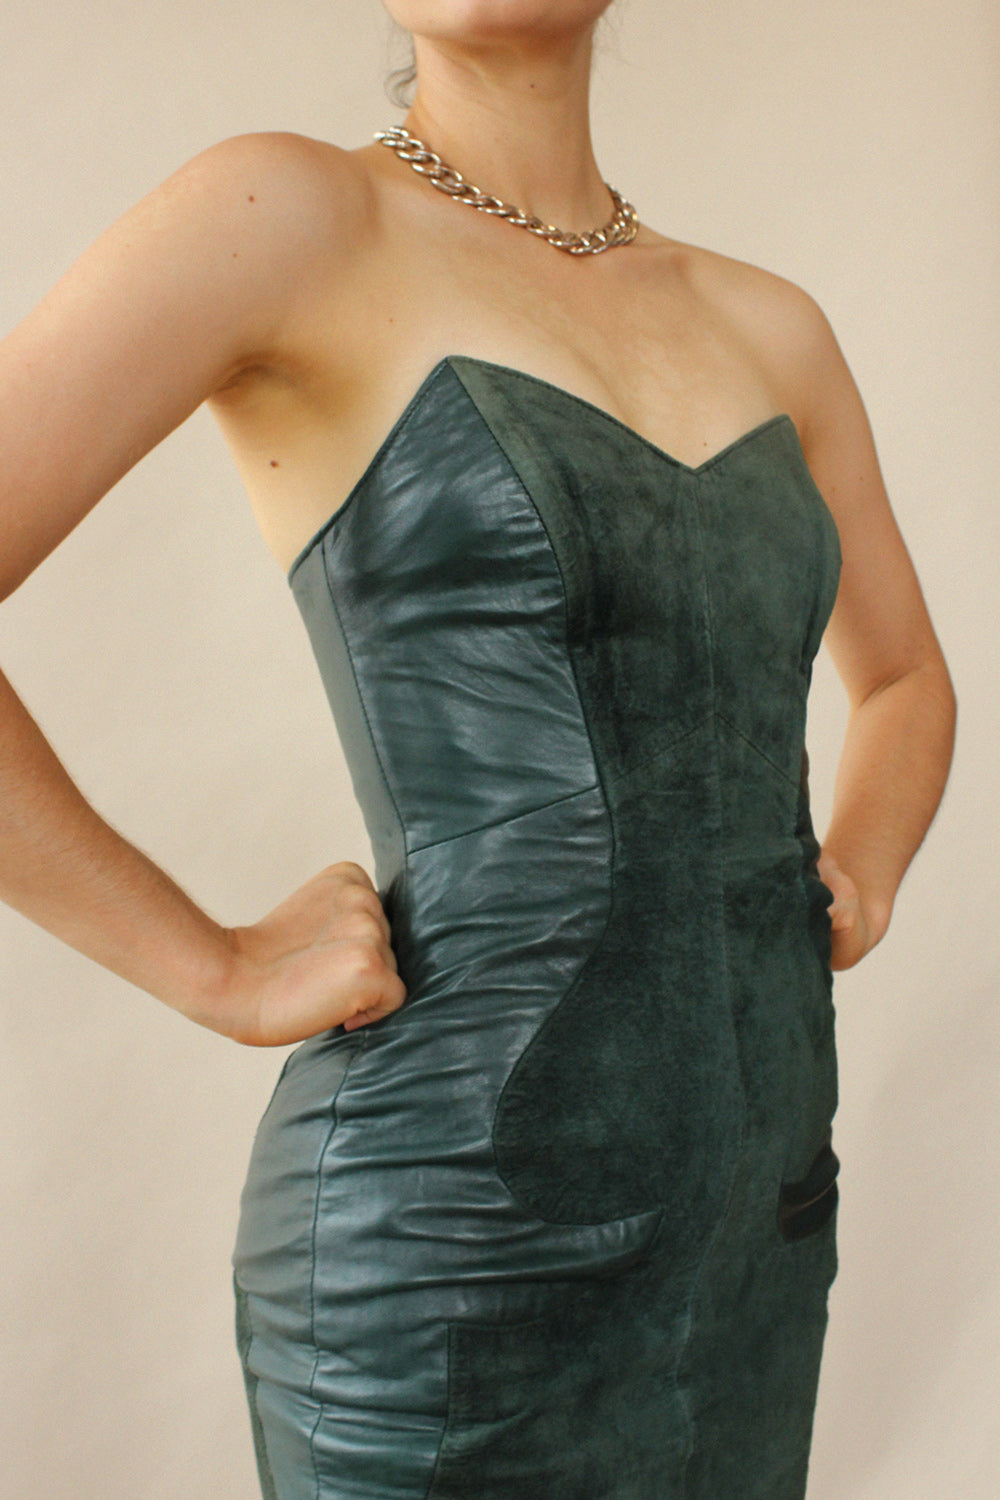 North Beach Leather Bustier Dress XS